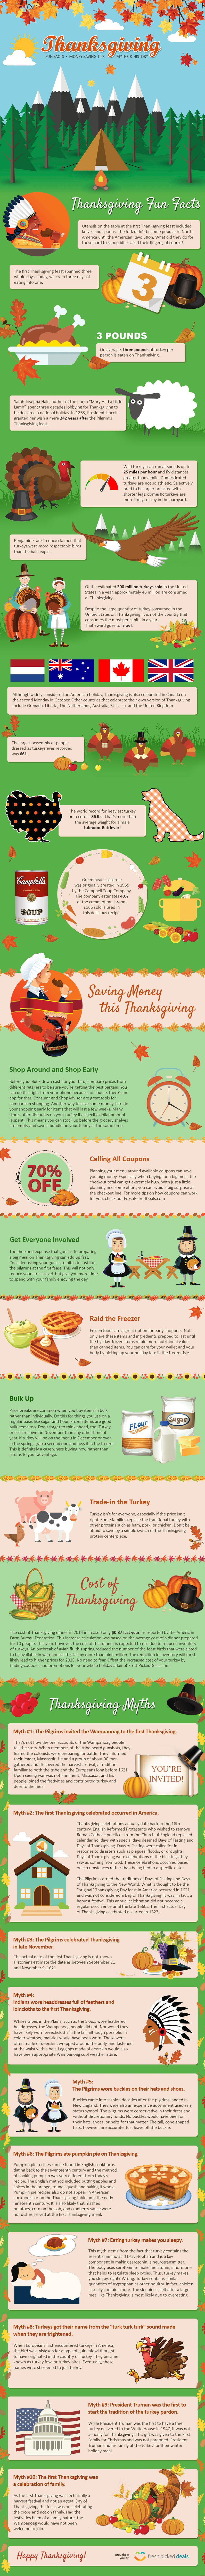 Thanksgiving Fun Facts and Money Saving Tips #infographic